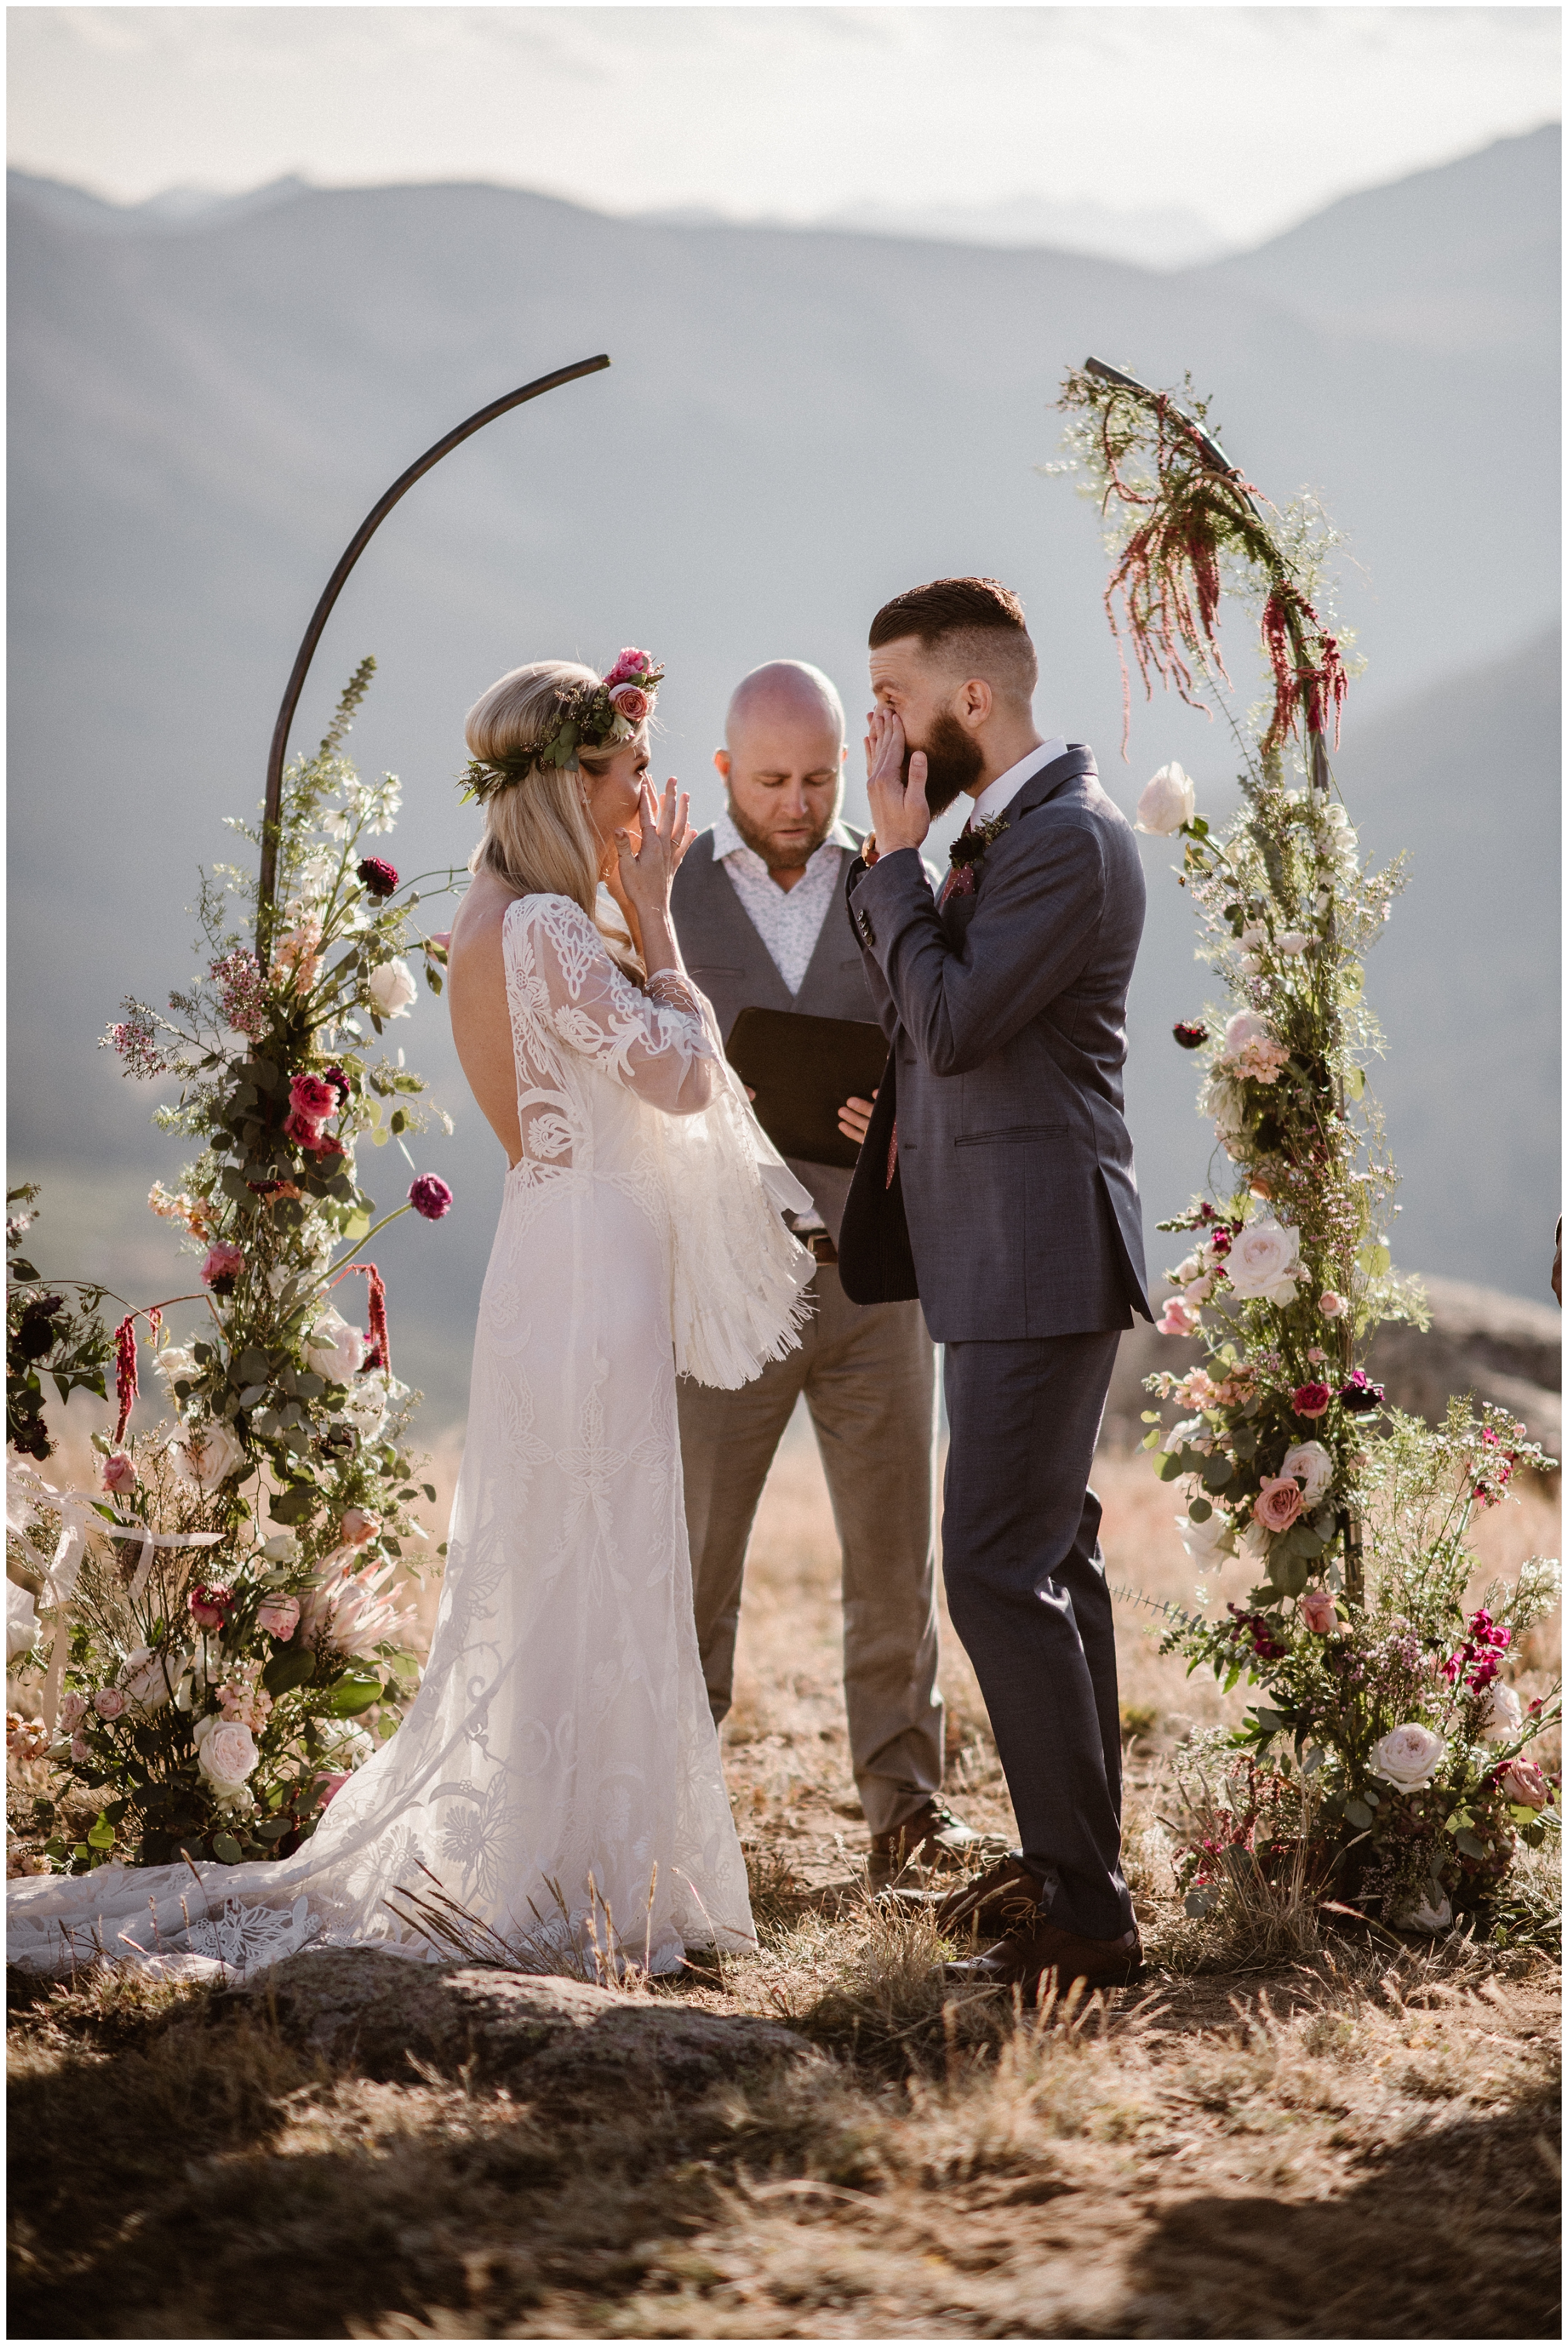 A bride and a groom both stand in front of a gorgeous, flowered arch as their officiant reads through their wedding ceremony outline. Both the bride and groom wipe tears away from their eyes.